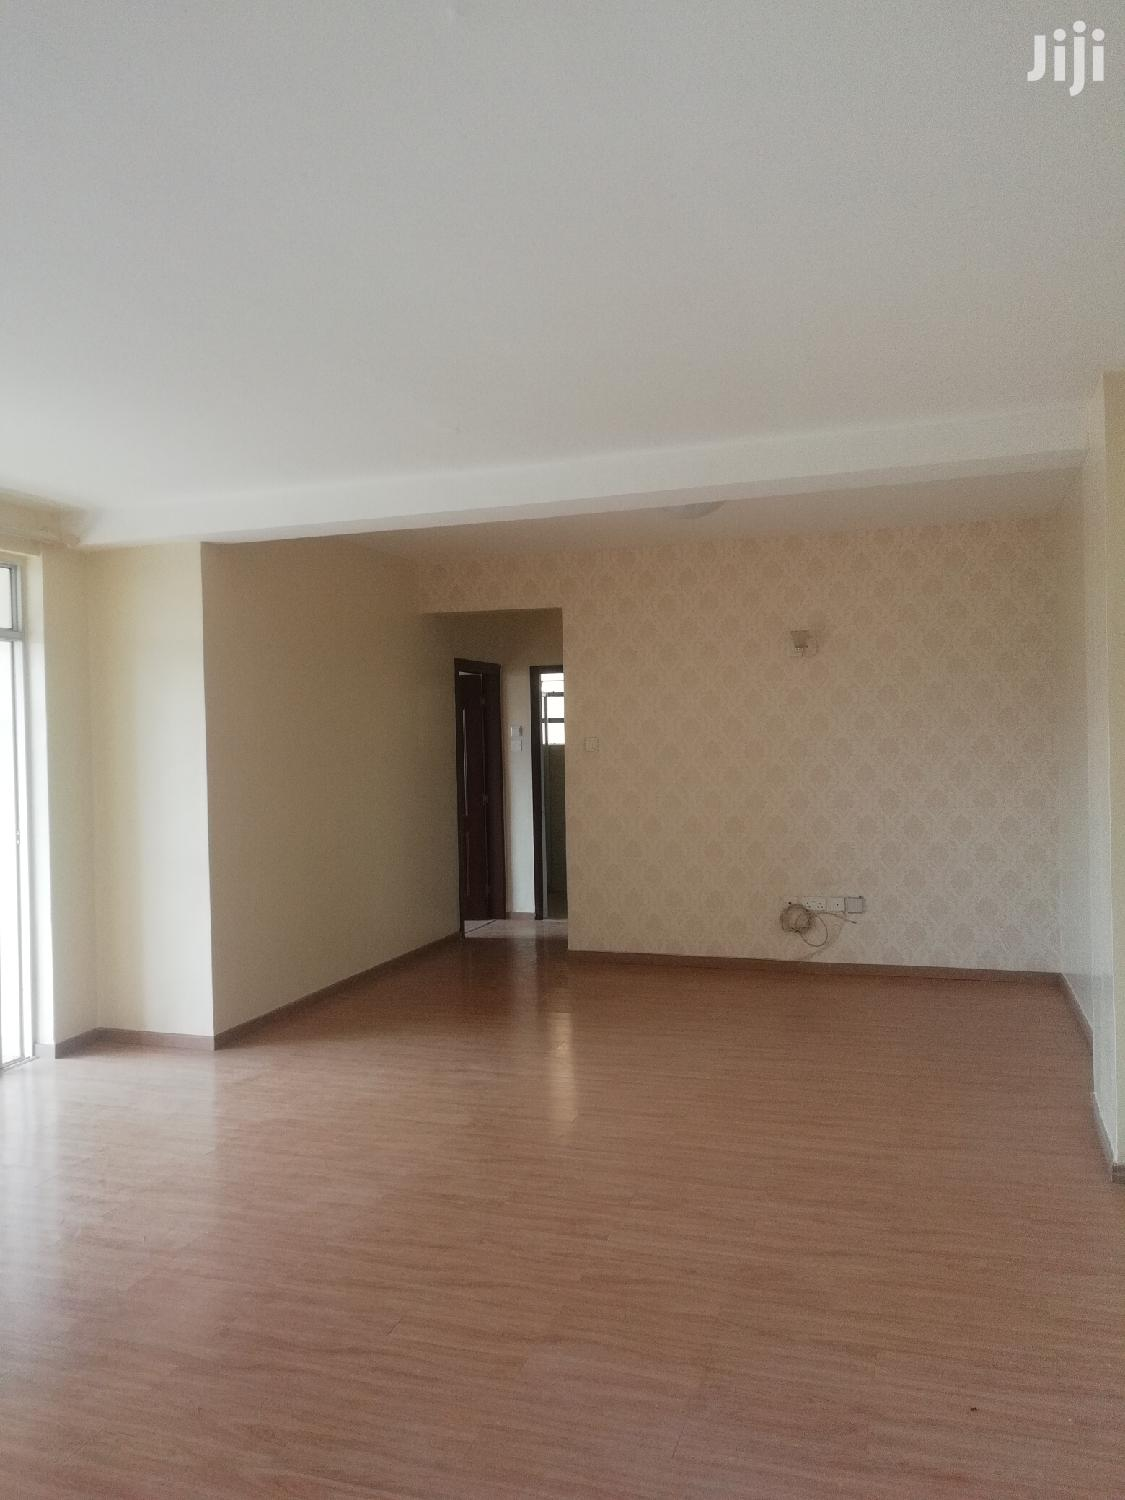 Property World, 2brs Apartment Pool, Gym Lift and Secure | Houses & Apartments For Rent for sale in Kilimani, Nairobi, Kenya